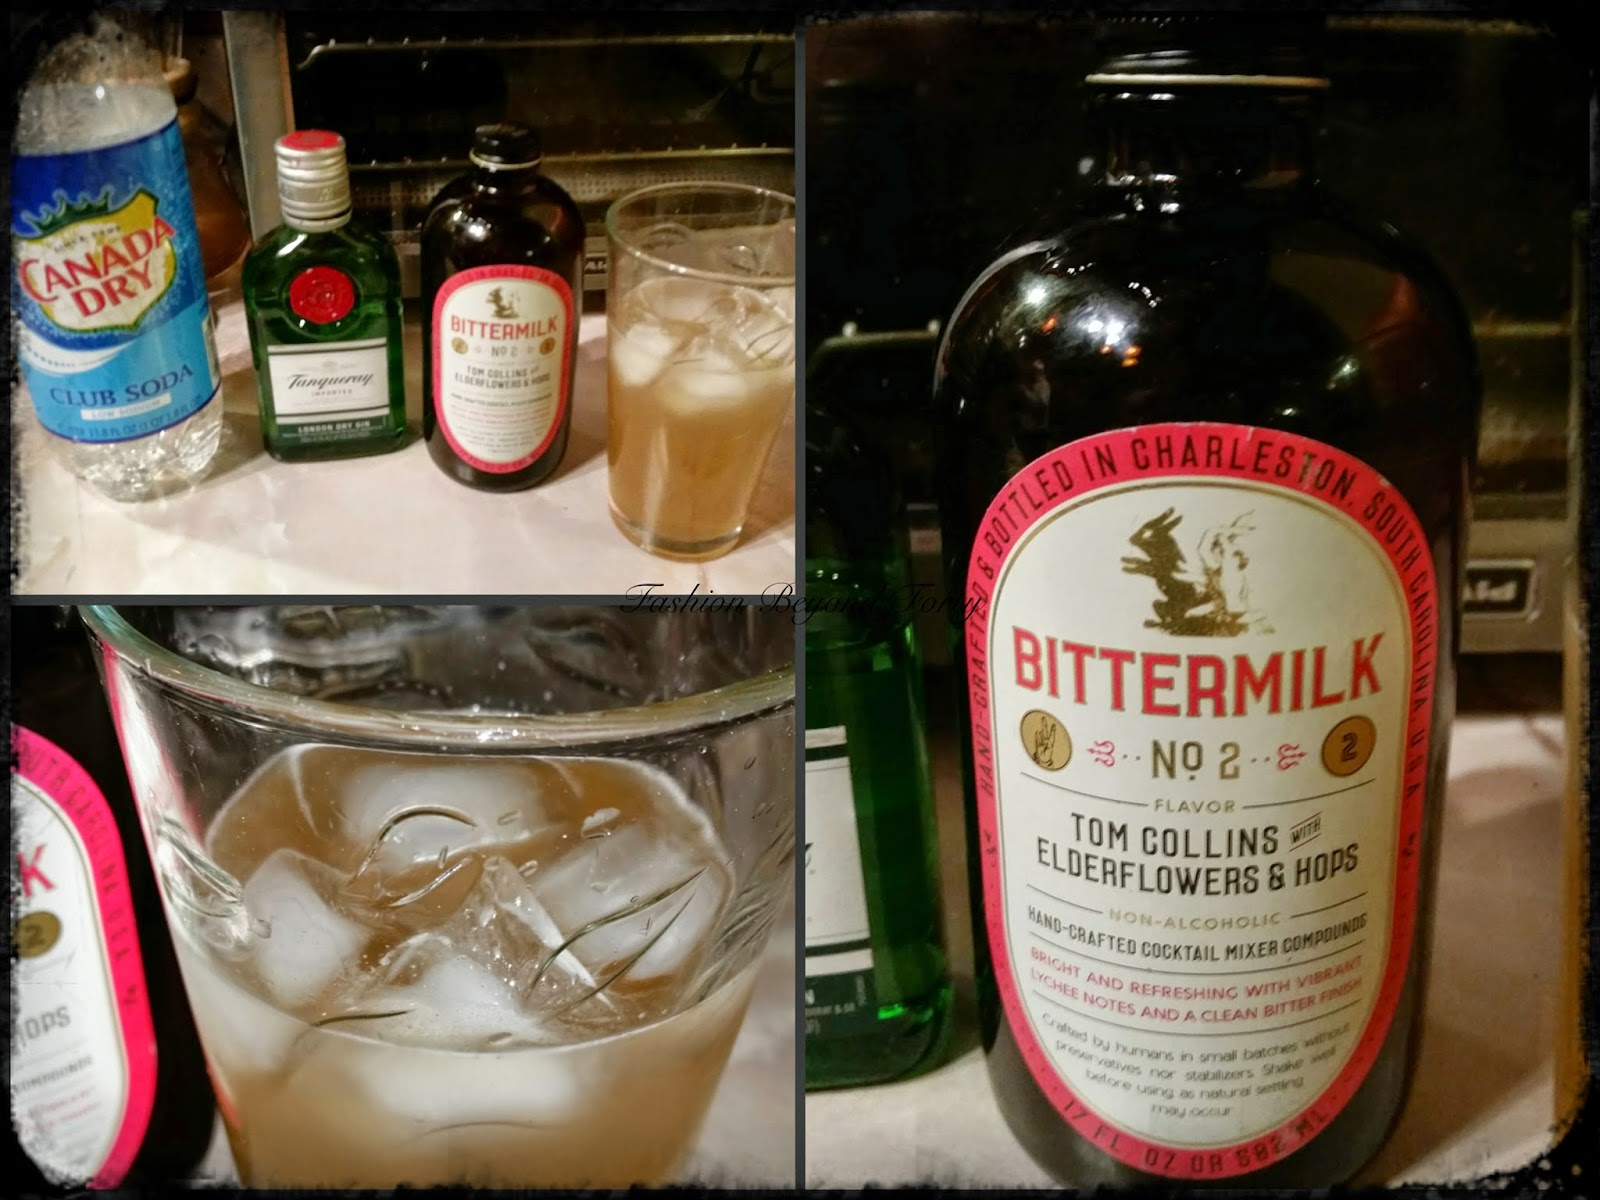 Bittermilk Tom Collins Elderflowers & Hops Fashion Beyond Forty